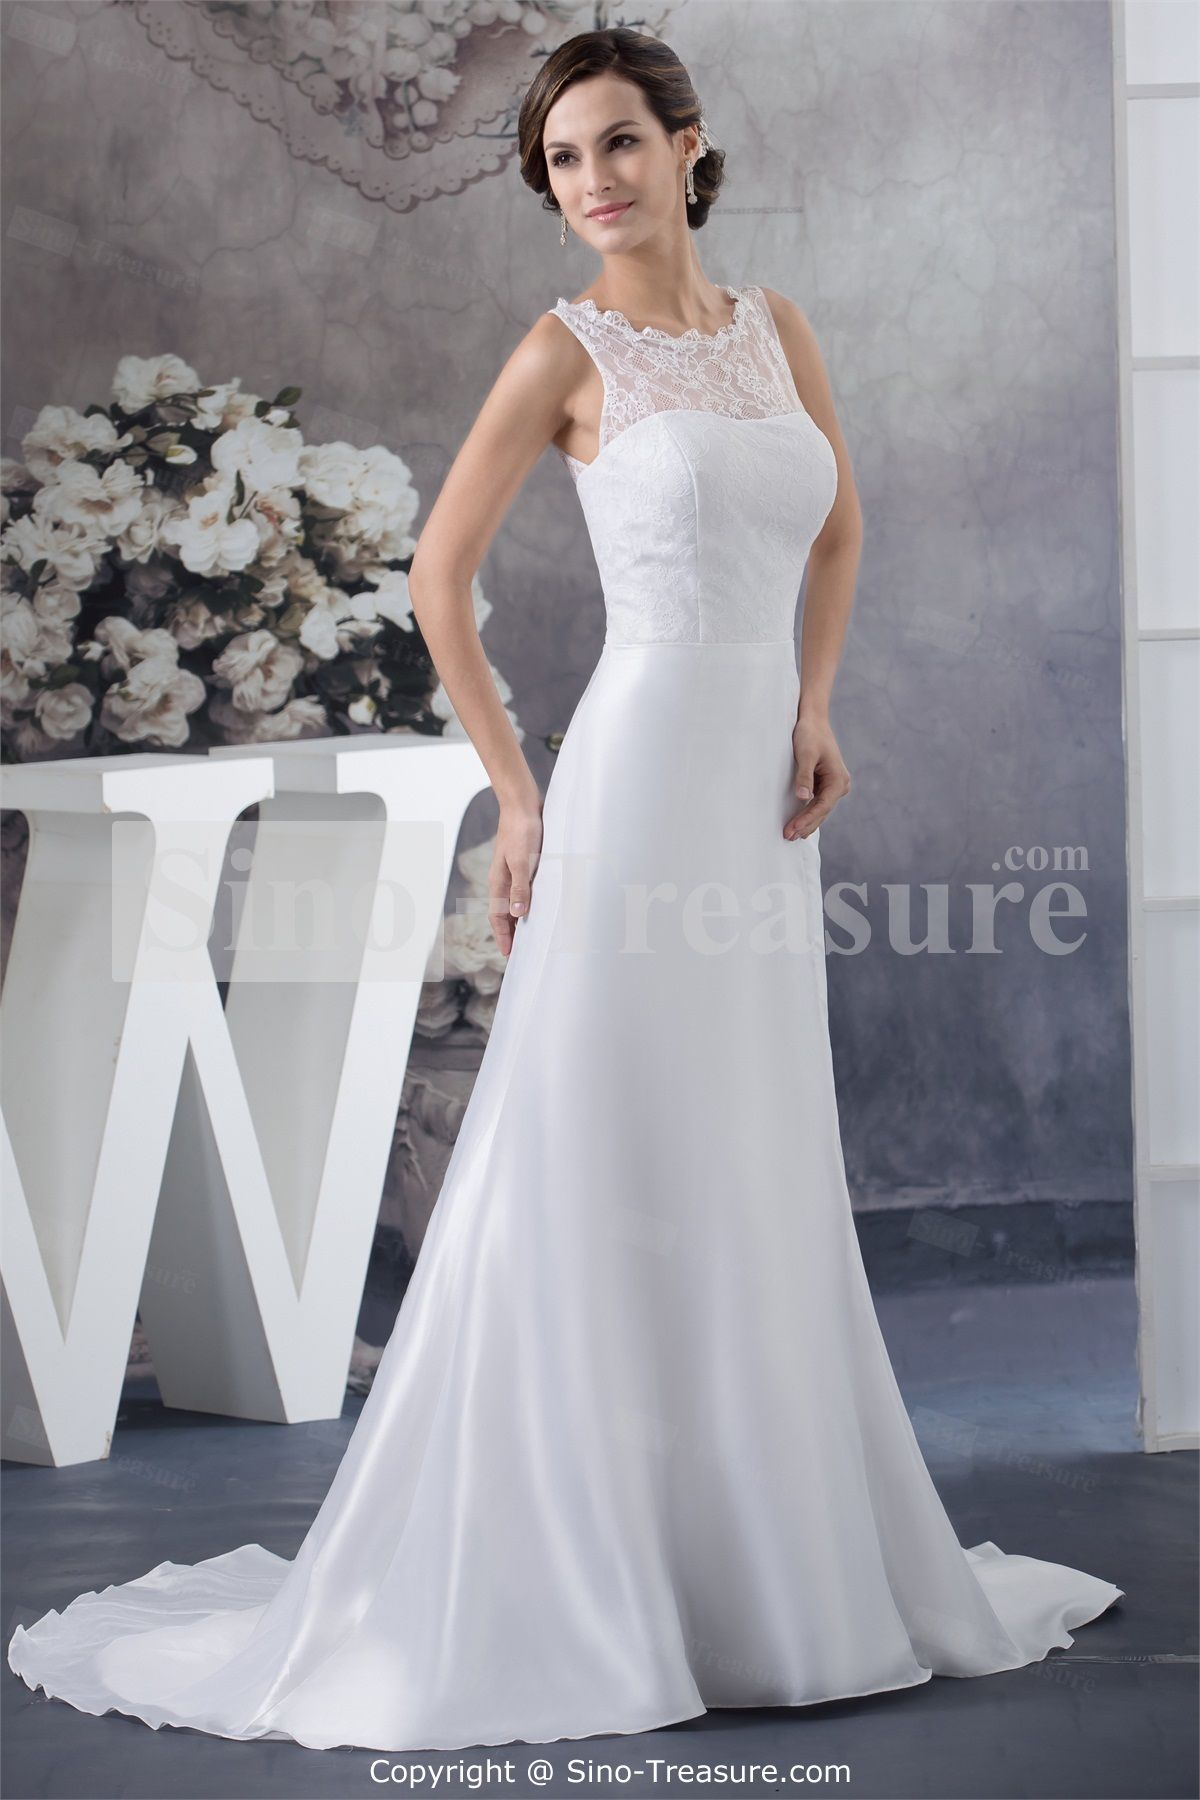 a line wedding dresses high neck wedding dress youure here because you are searching for your dreaming wedding dresses and your dream will come true at is a wedding dress